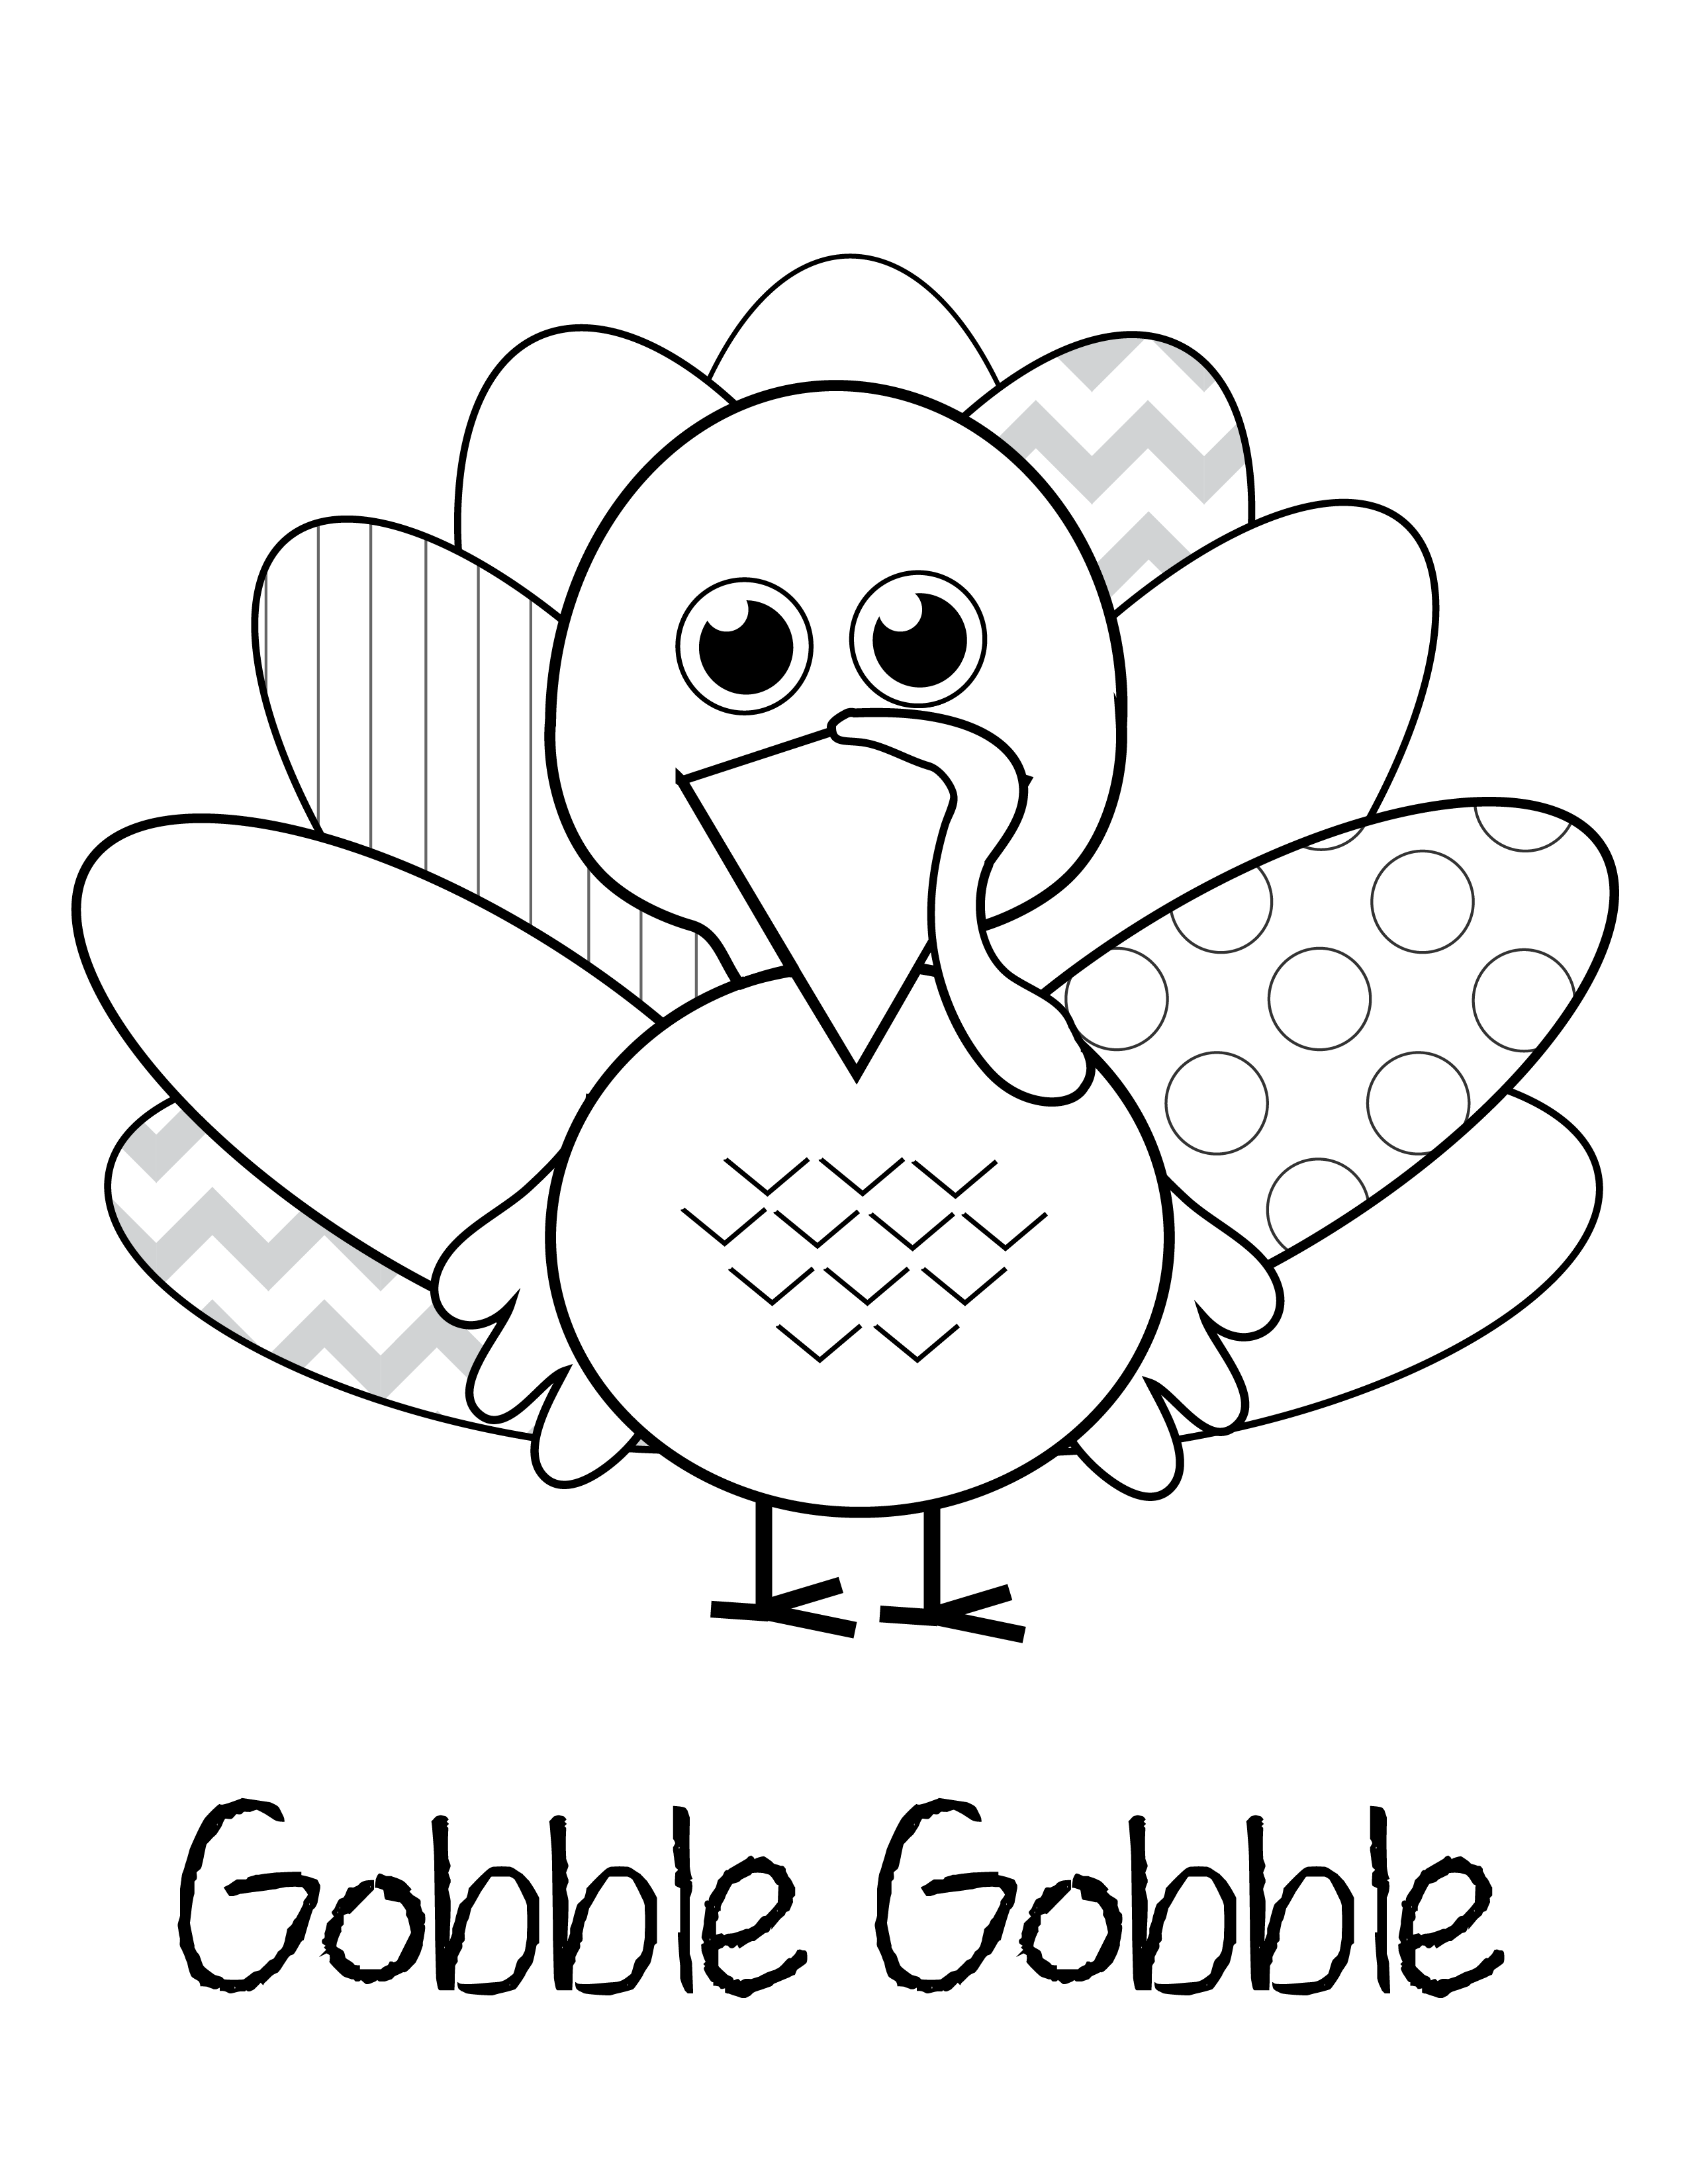 turky coloring pages 4 kids - photo#11